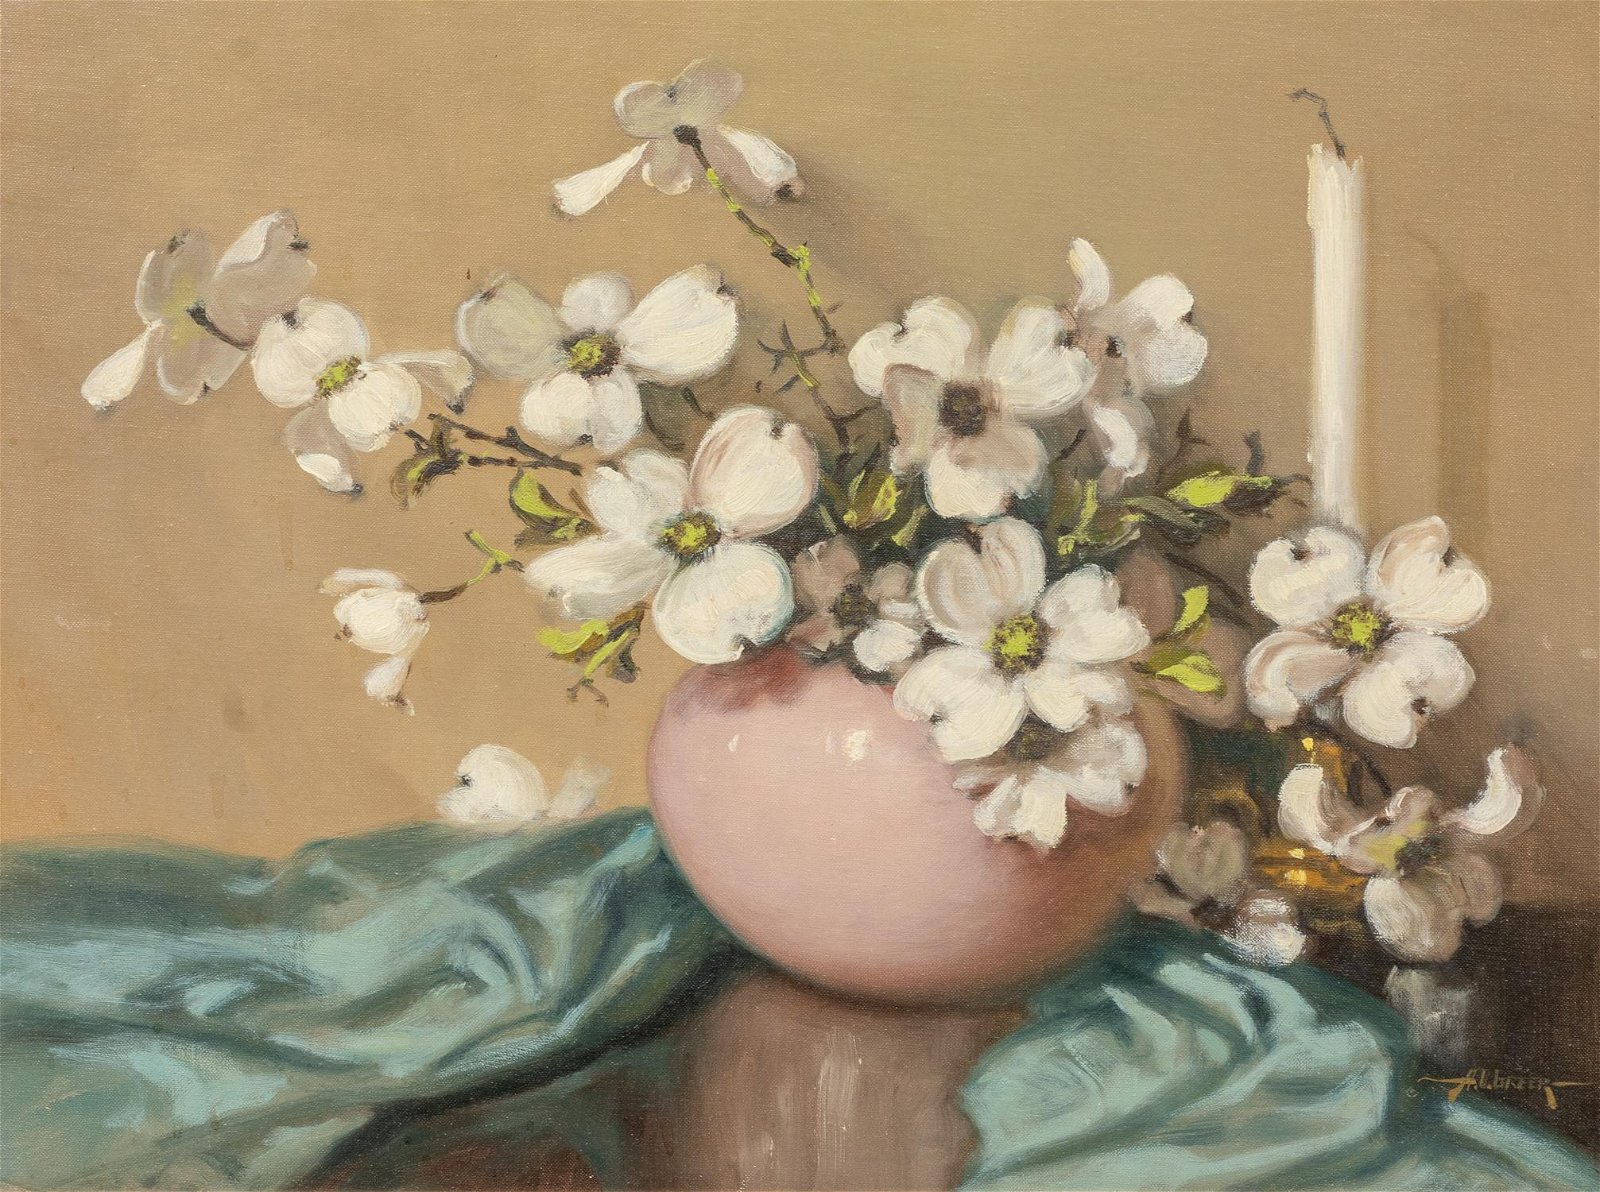 A.D. Greer (1904-1998), Dogwood Blossoms, oil on